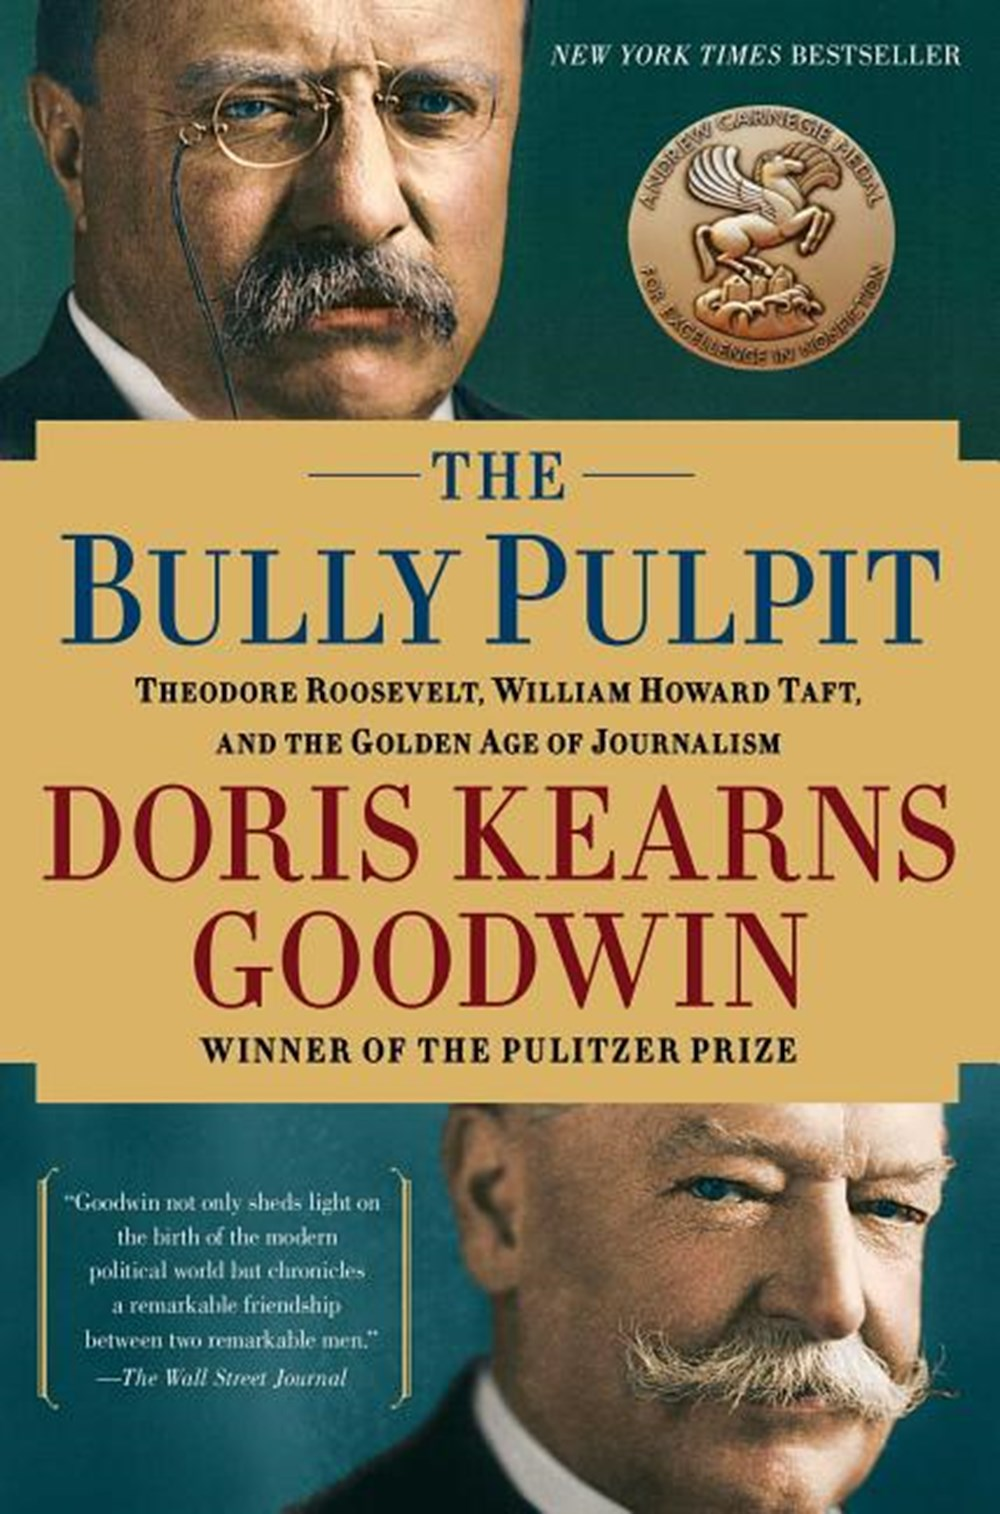 Bully Pulpit Theodore Roosevelt, William Howard Taft, and the Golden Age of Journalism